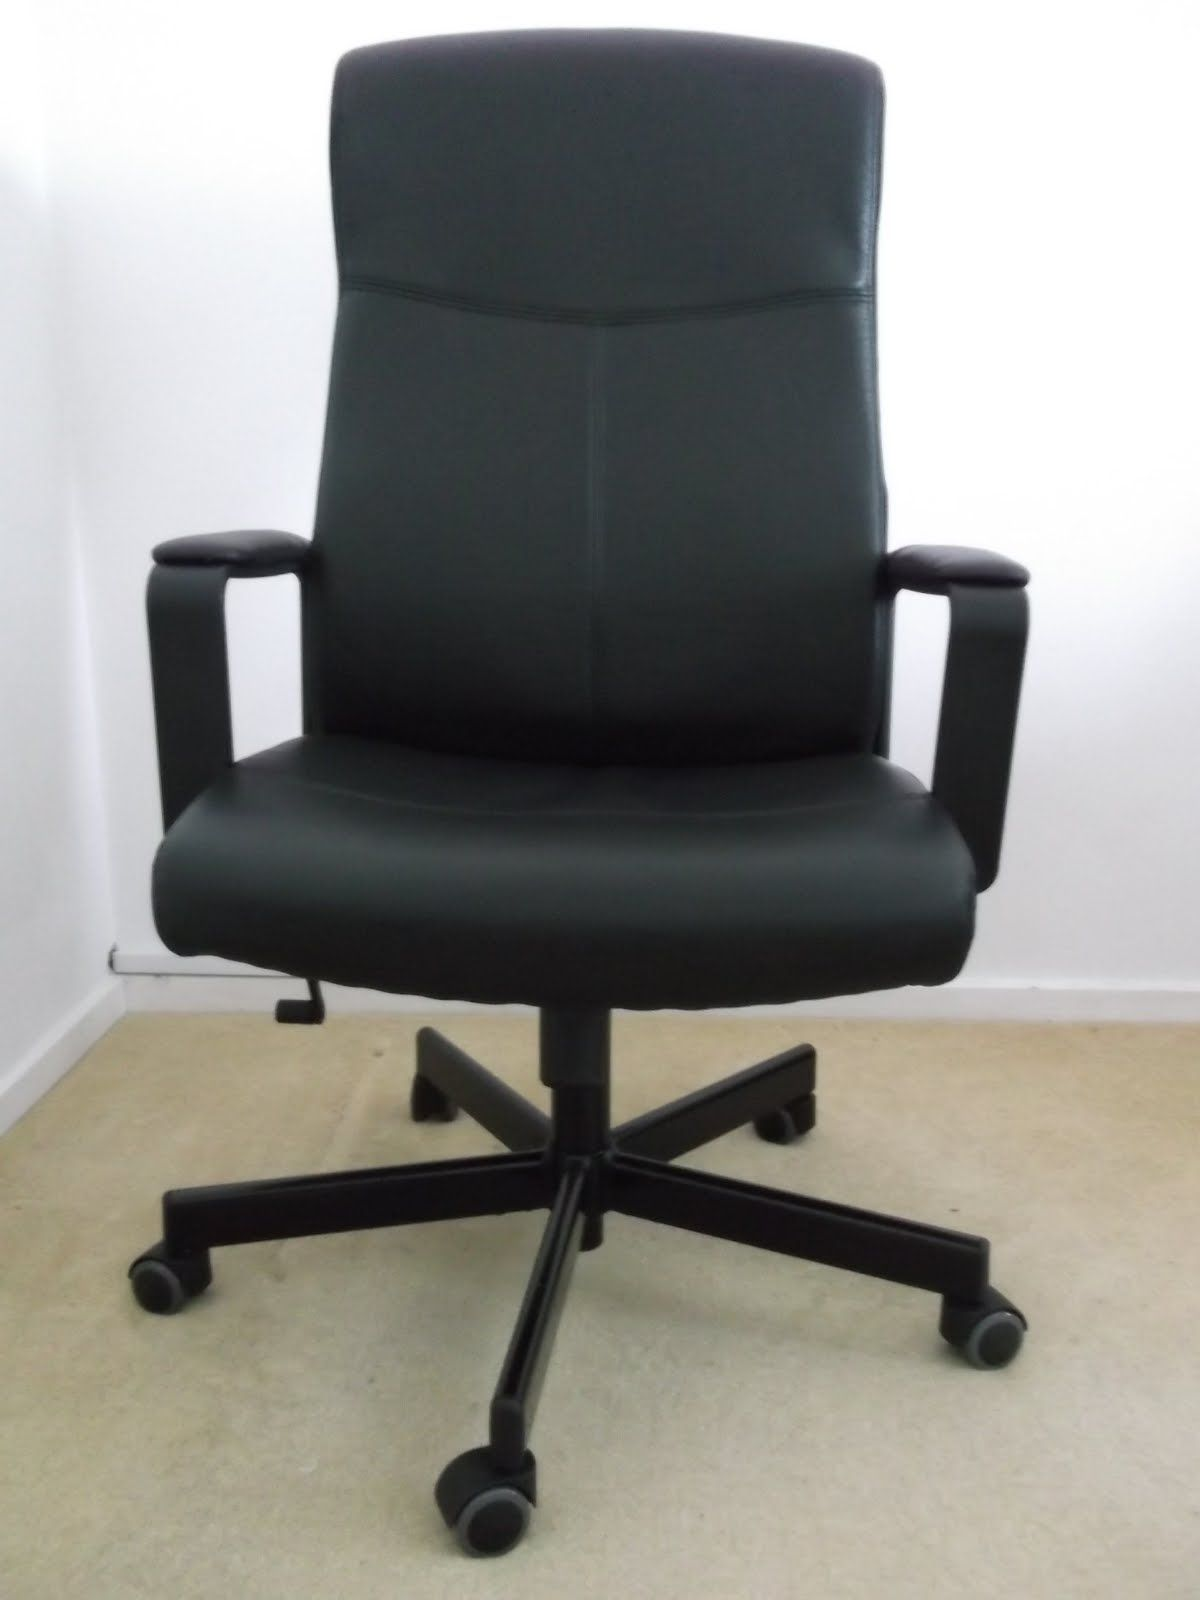 Ikea Office Chairs For Solution Of Uncomfortable Sitting Office Chair Design Best Office Chair Ikea Office Chair